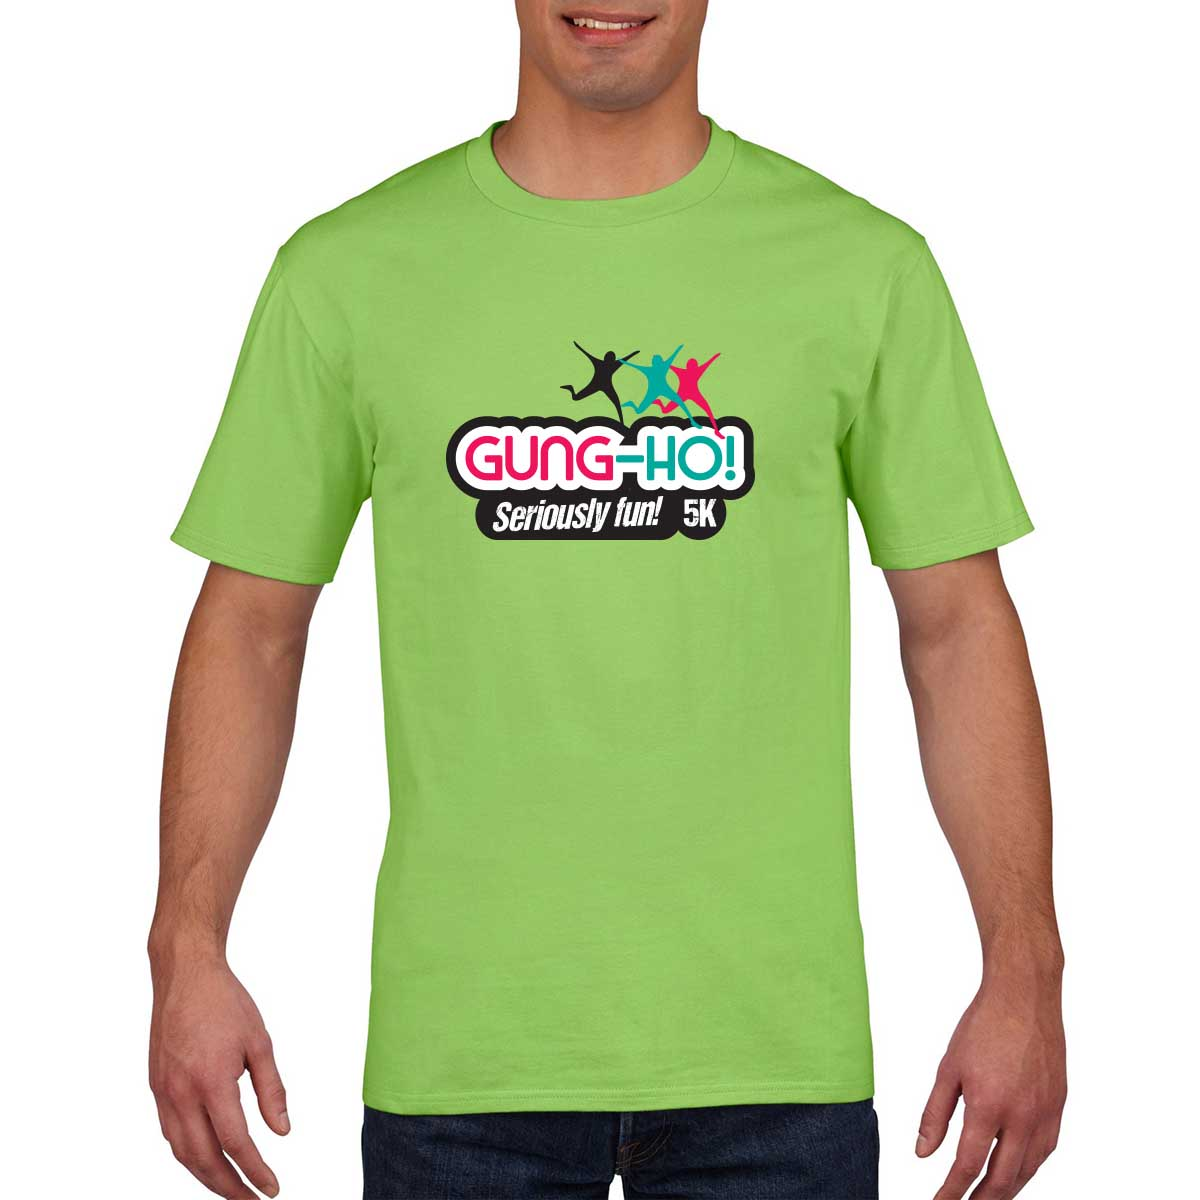 Gung-Ho! Men's Tee - Regular Fit